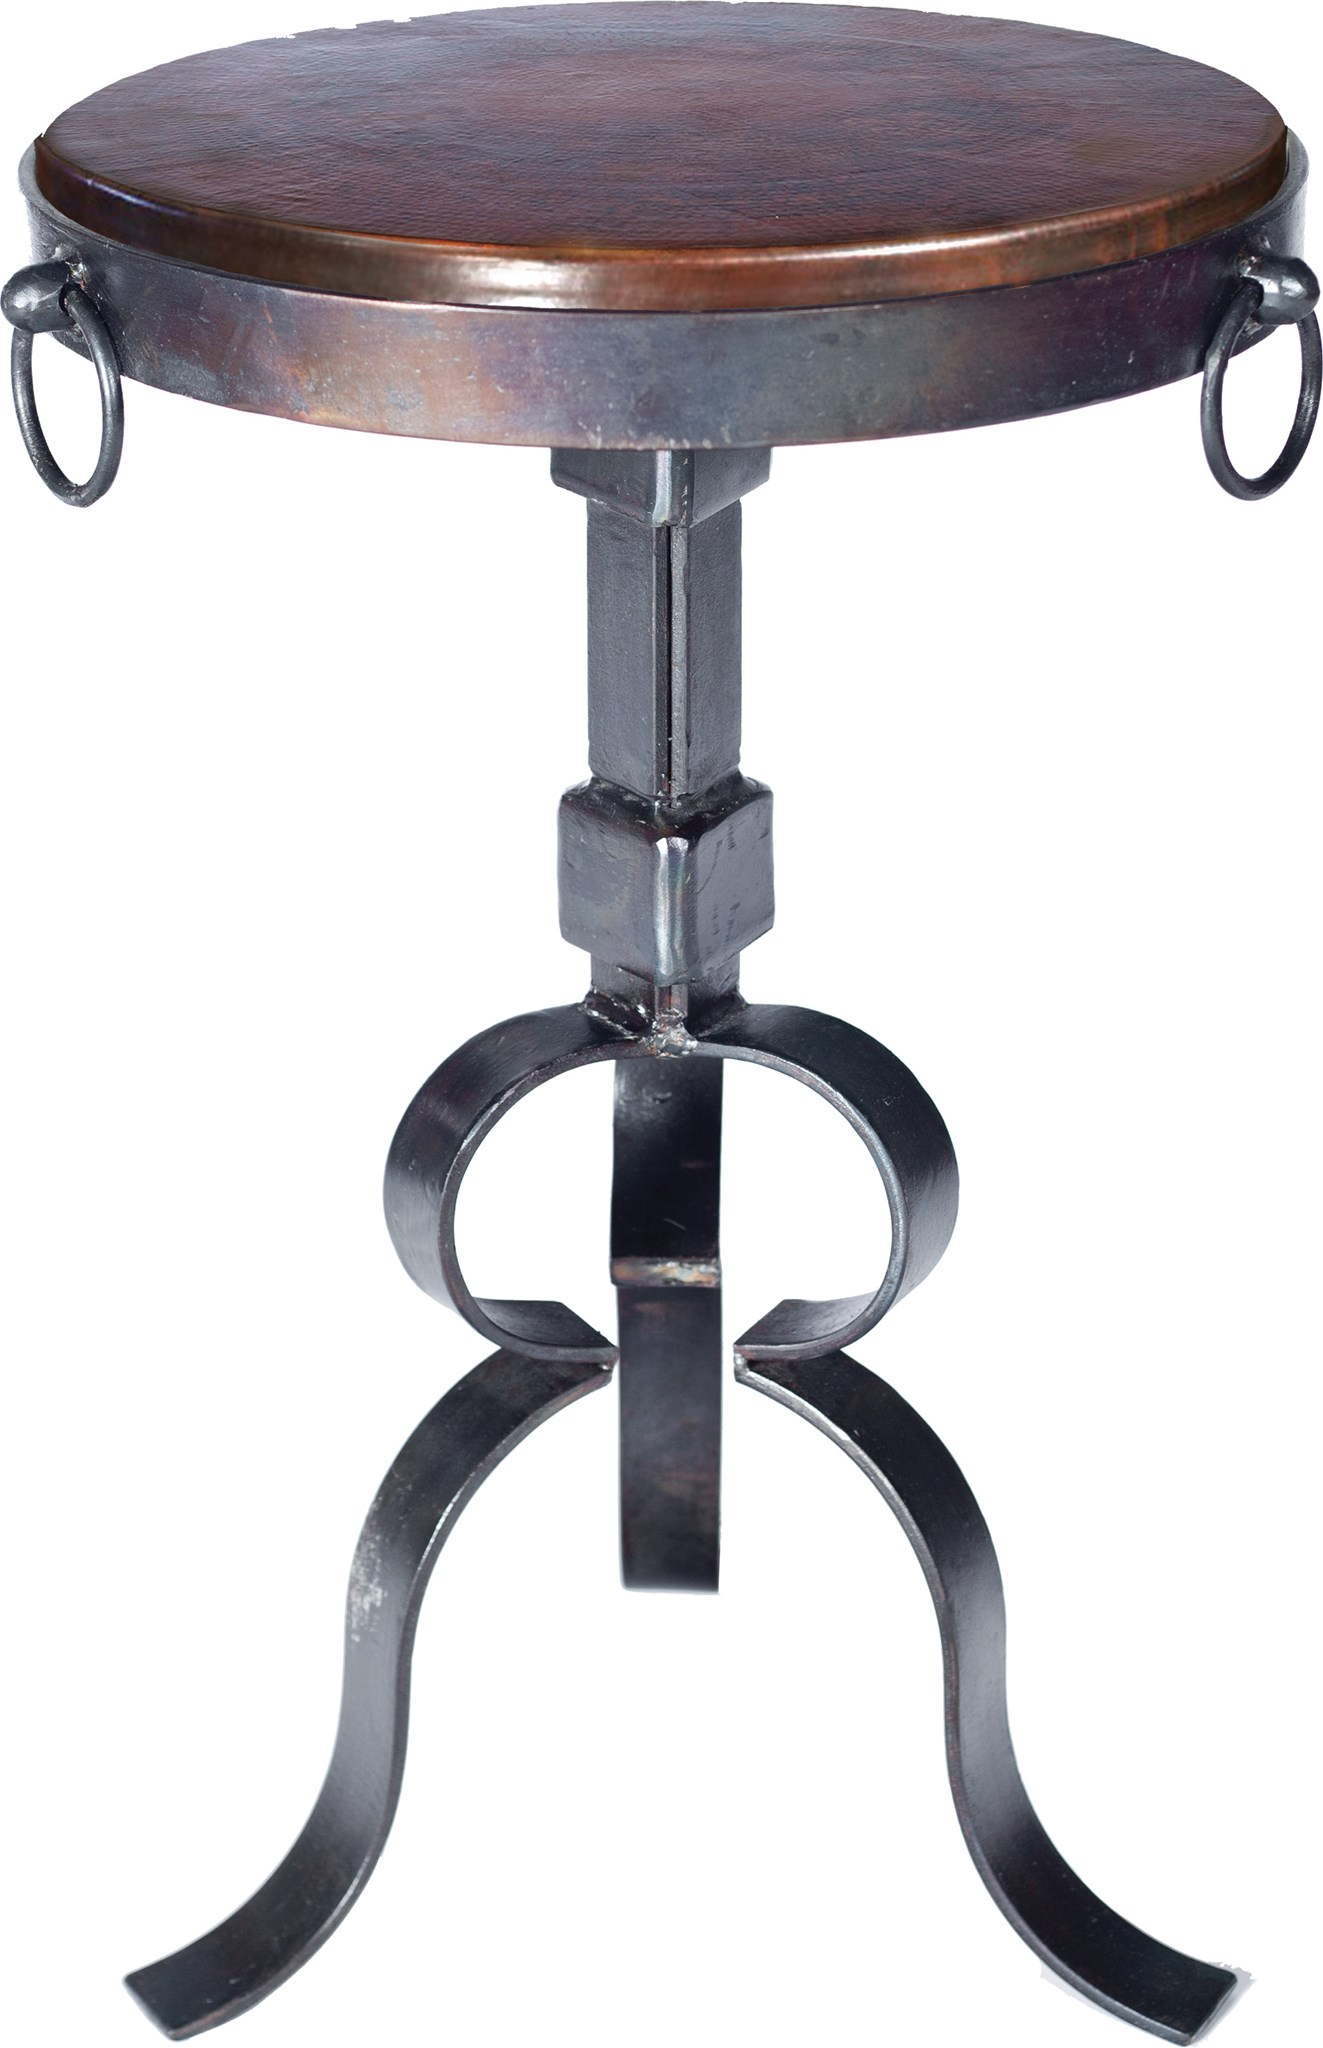 round iron accent table with dark brown hammered copper top boulevard urban living ikea storage furniture coffee decorative accents large amazing tables concrete look nested floor